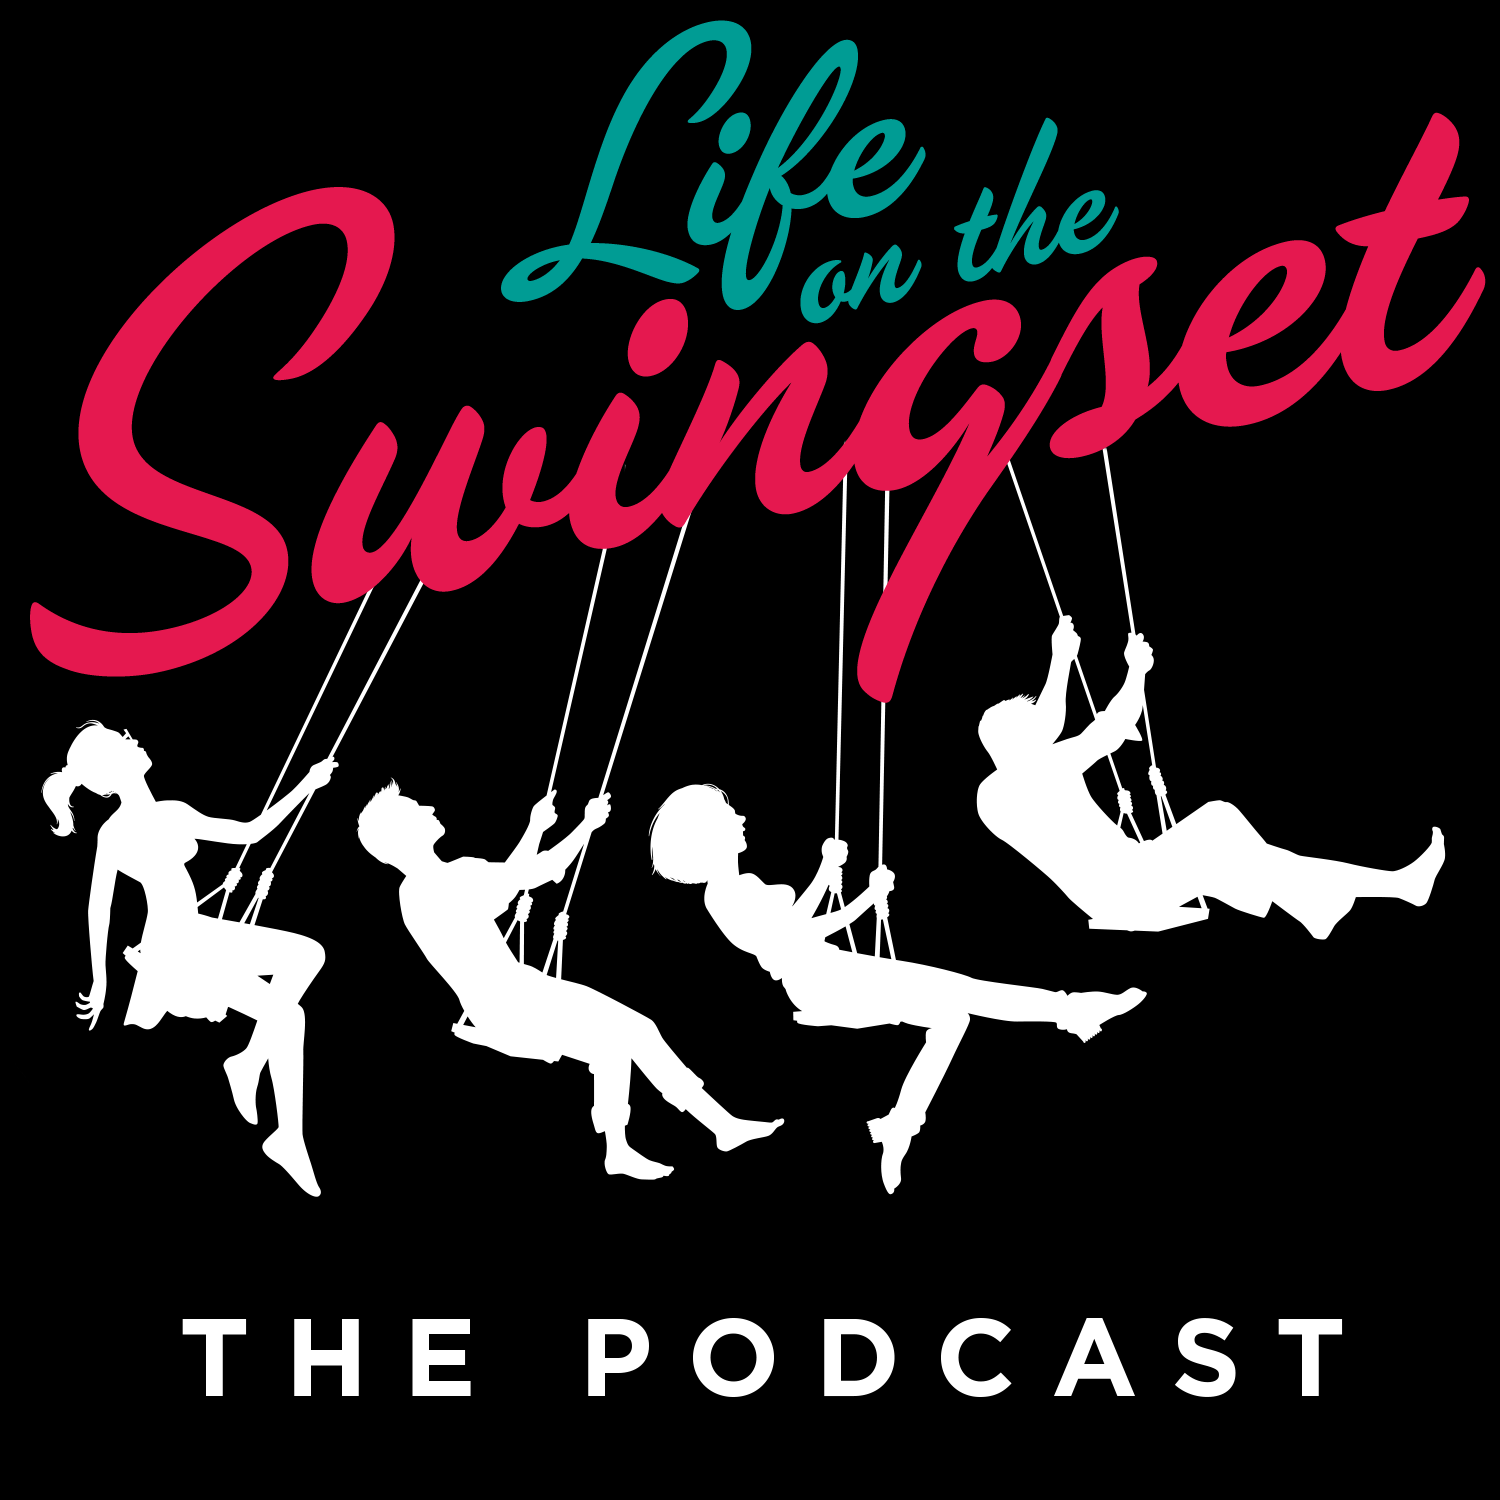 Life on the Swingset 2015 Podcast Logo